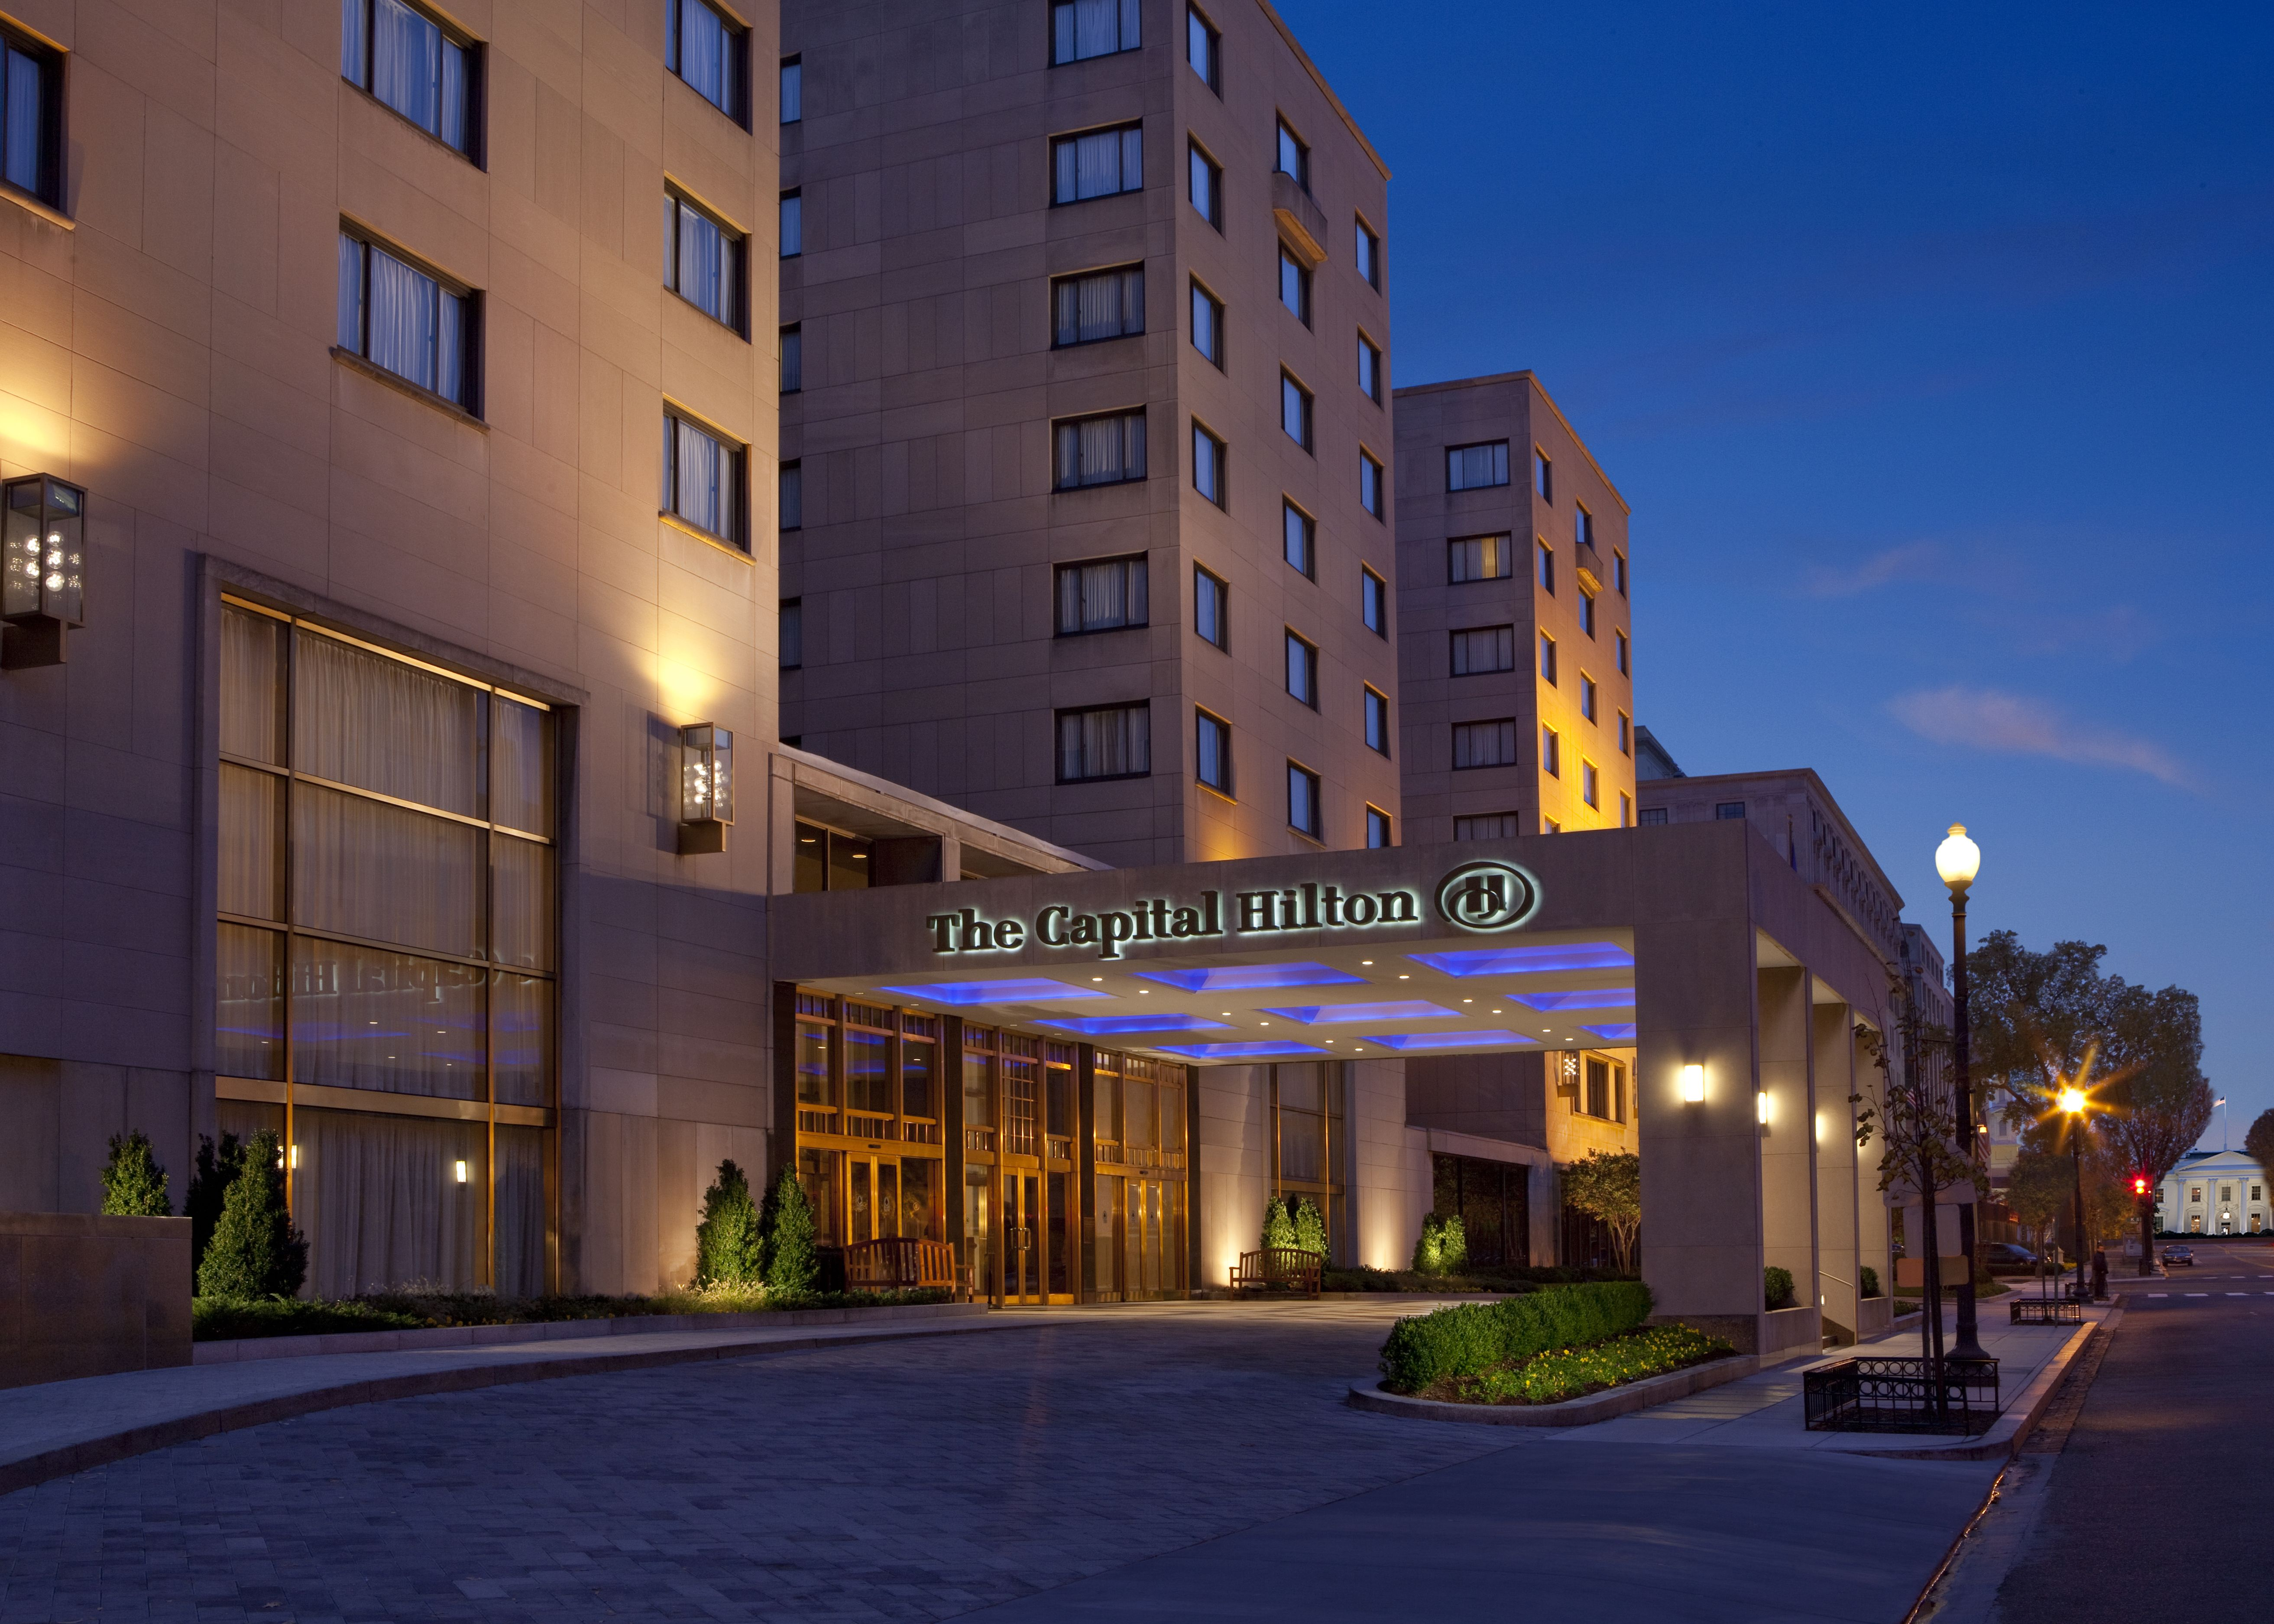 Capital Hilton A Great Family Hotel In Washington D C